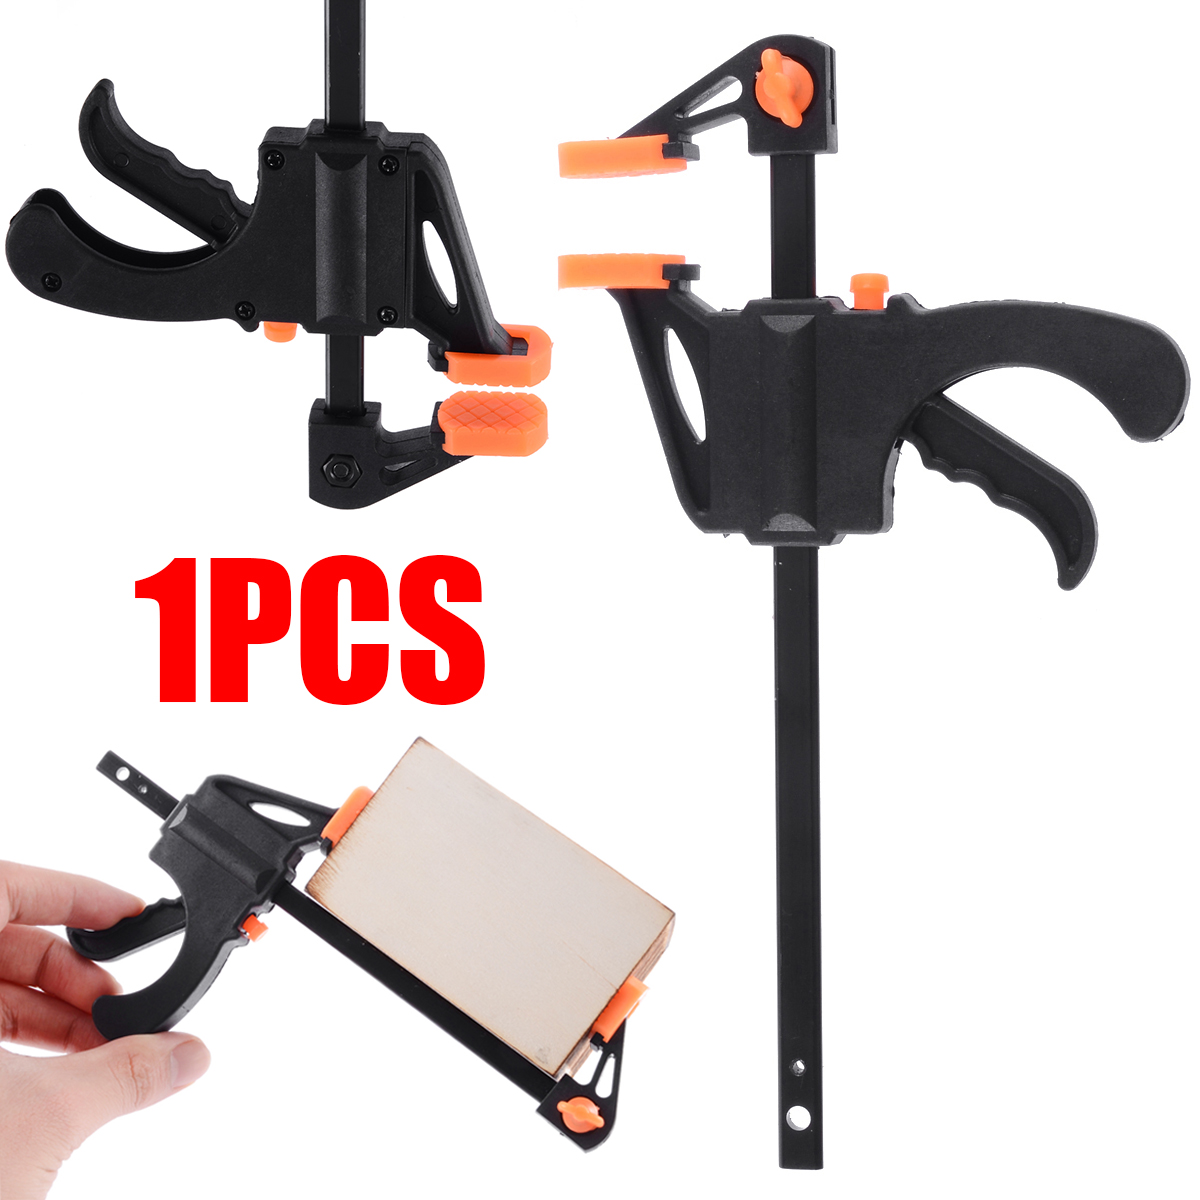 4 Inch Fast Quick Woodworking Clip Wooden Board Tool Release Speed Squeeze Work Bar Clamp Spreader Gadget Tool